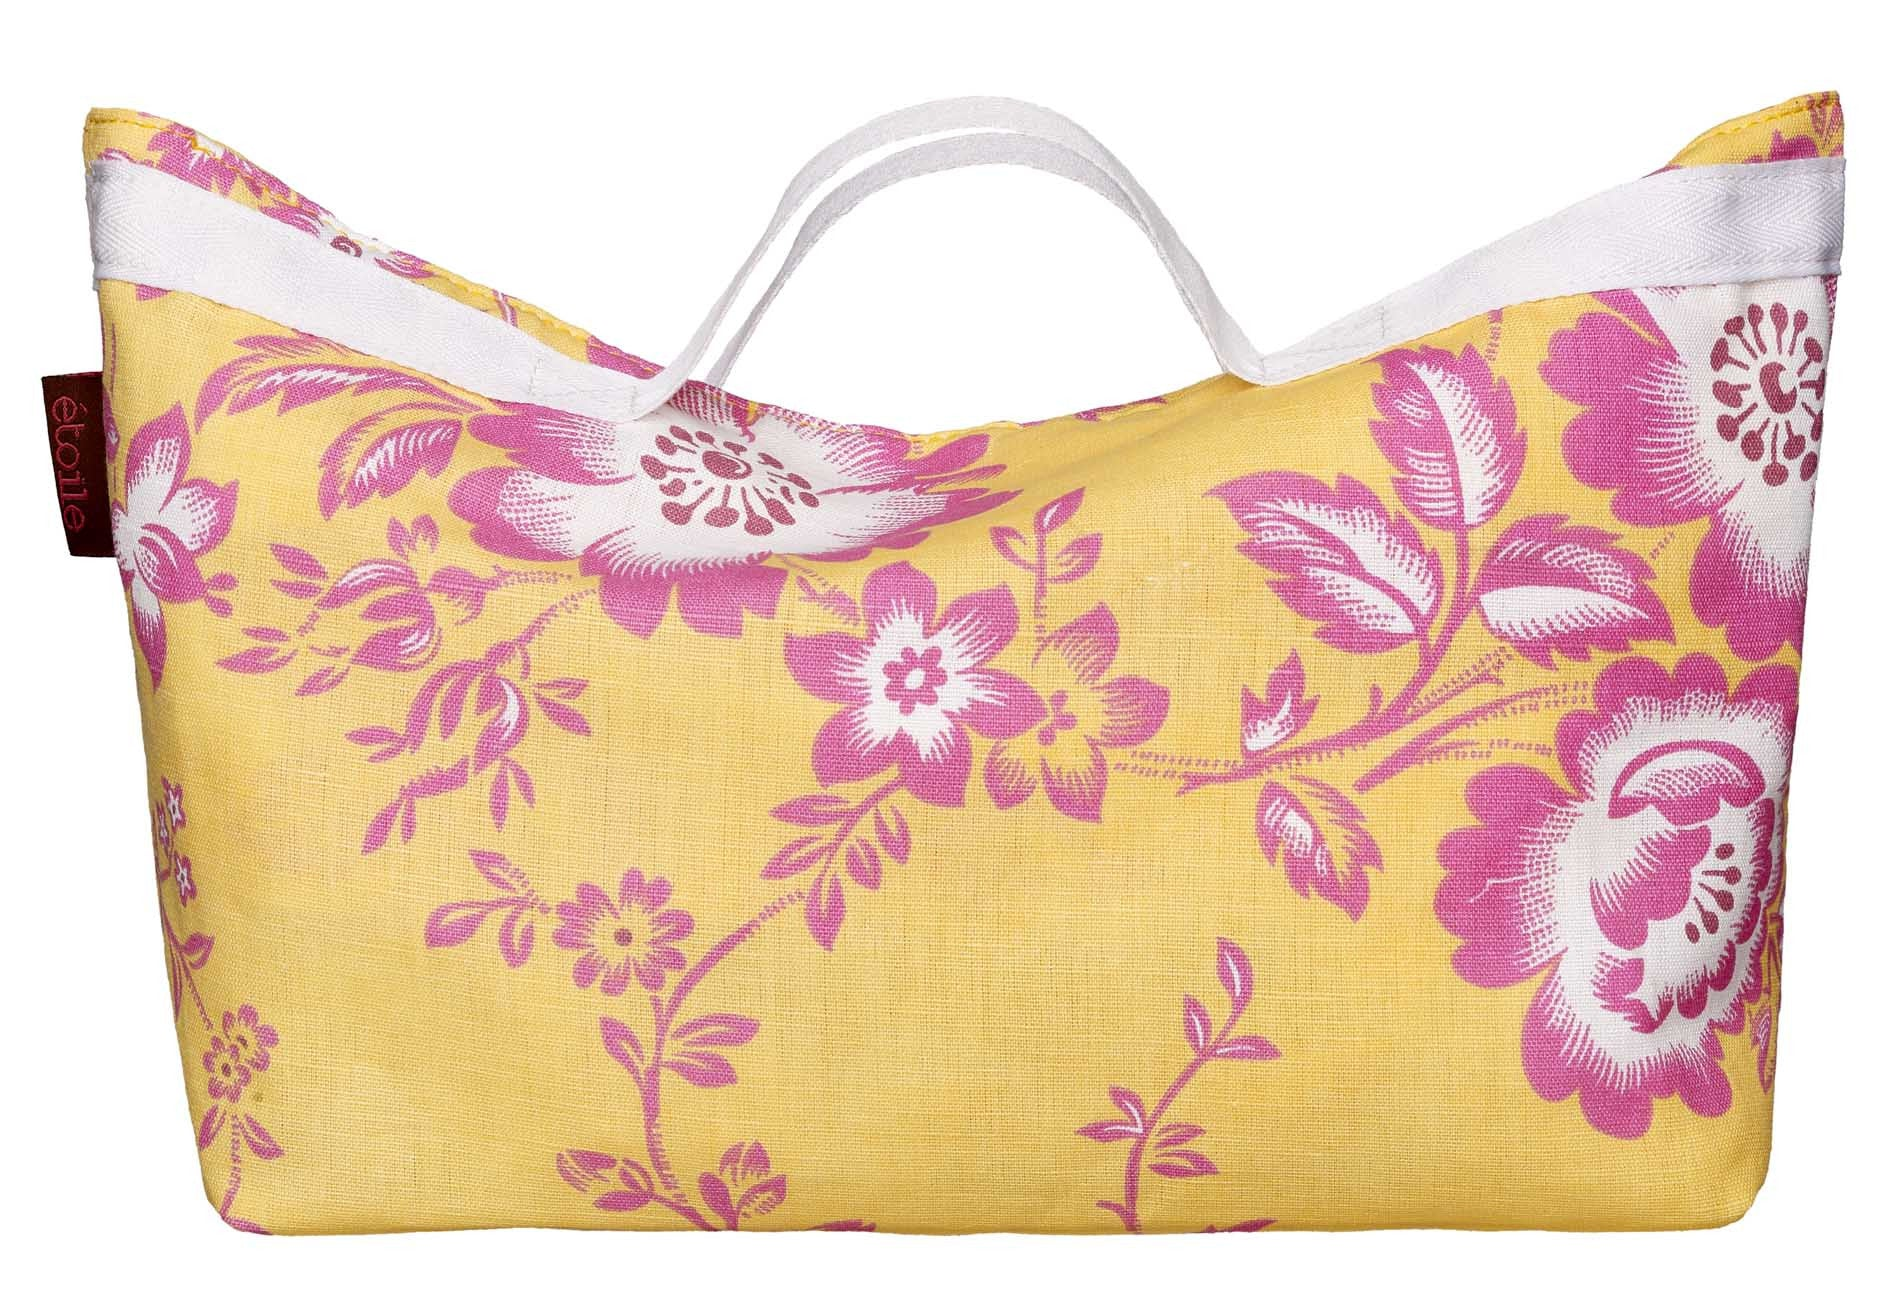 Miles Floral Pattern Convertible Cotton Linen Shopping Bag in Lemon Yellow